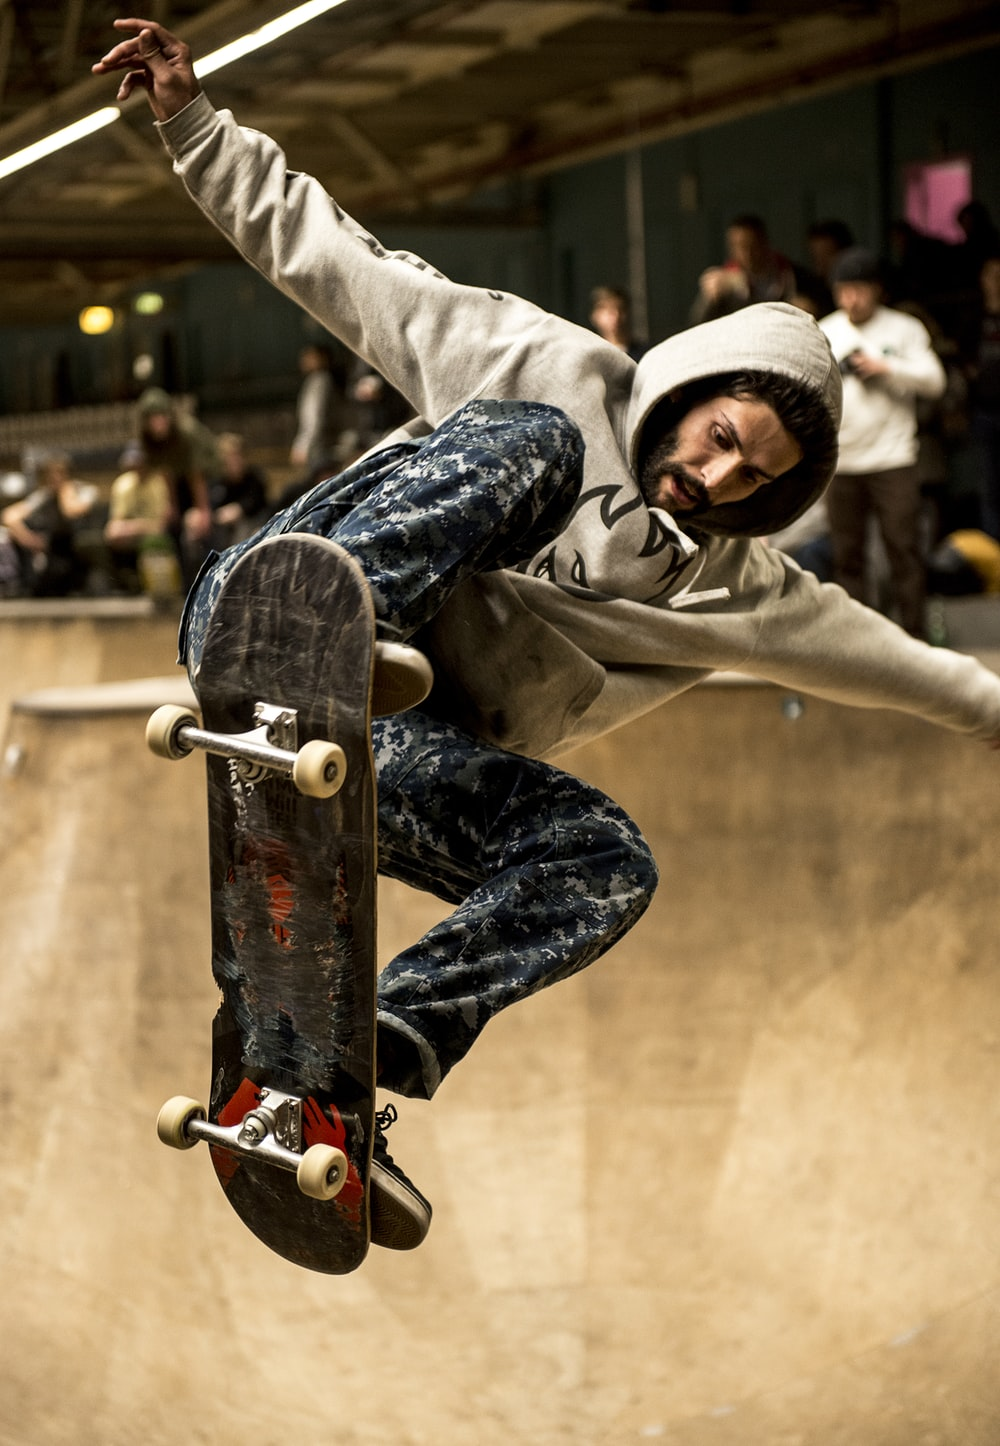 man riding skateboard and doing ollie trick